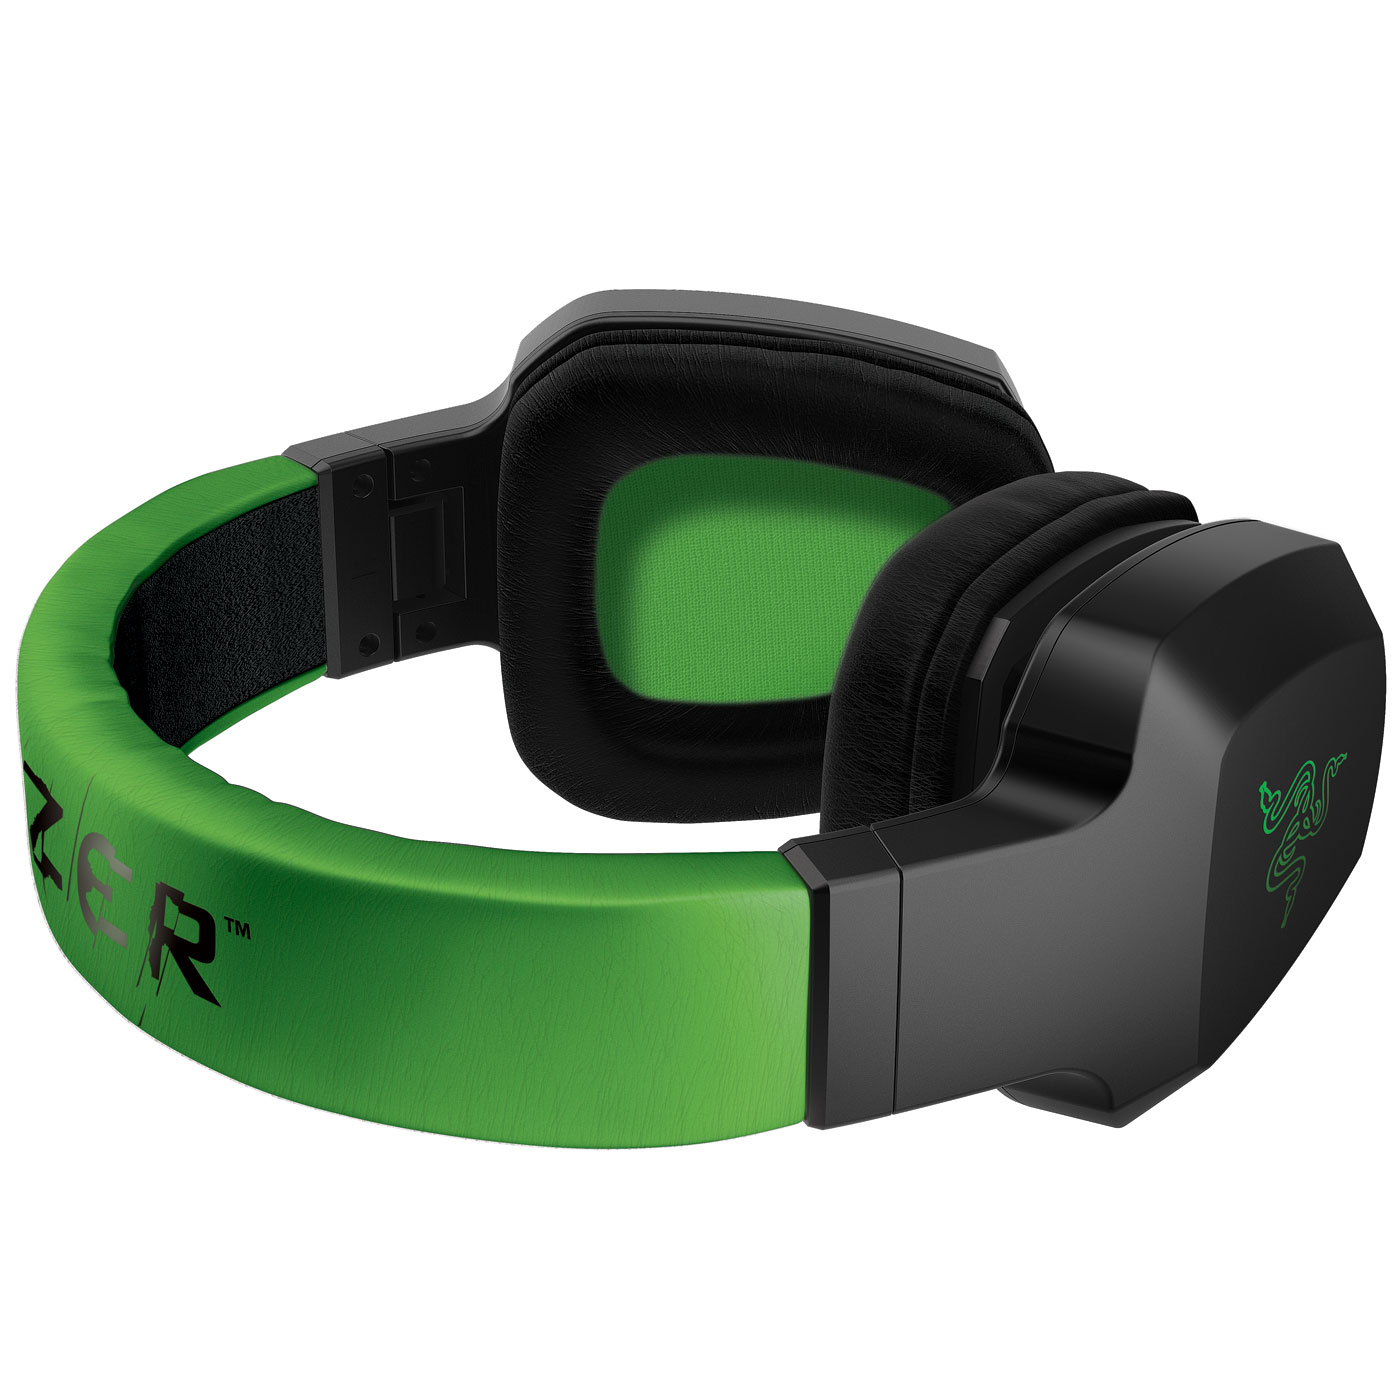 razer electra vert micro casque razer sur ldlc. Black Bedroom Furniture Sets. Home Design Ideas